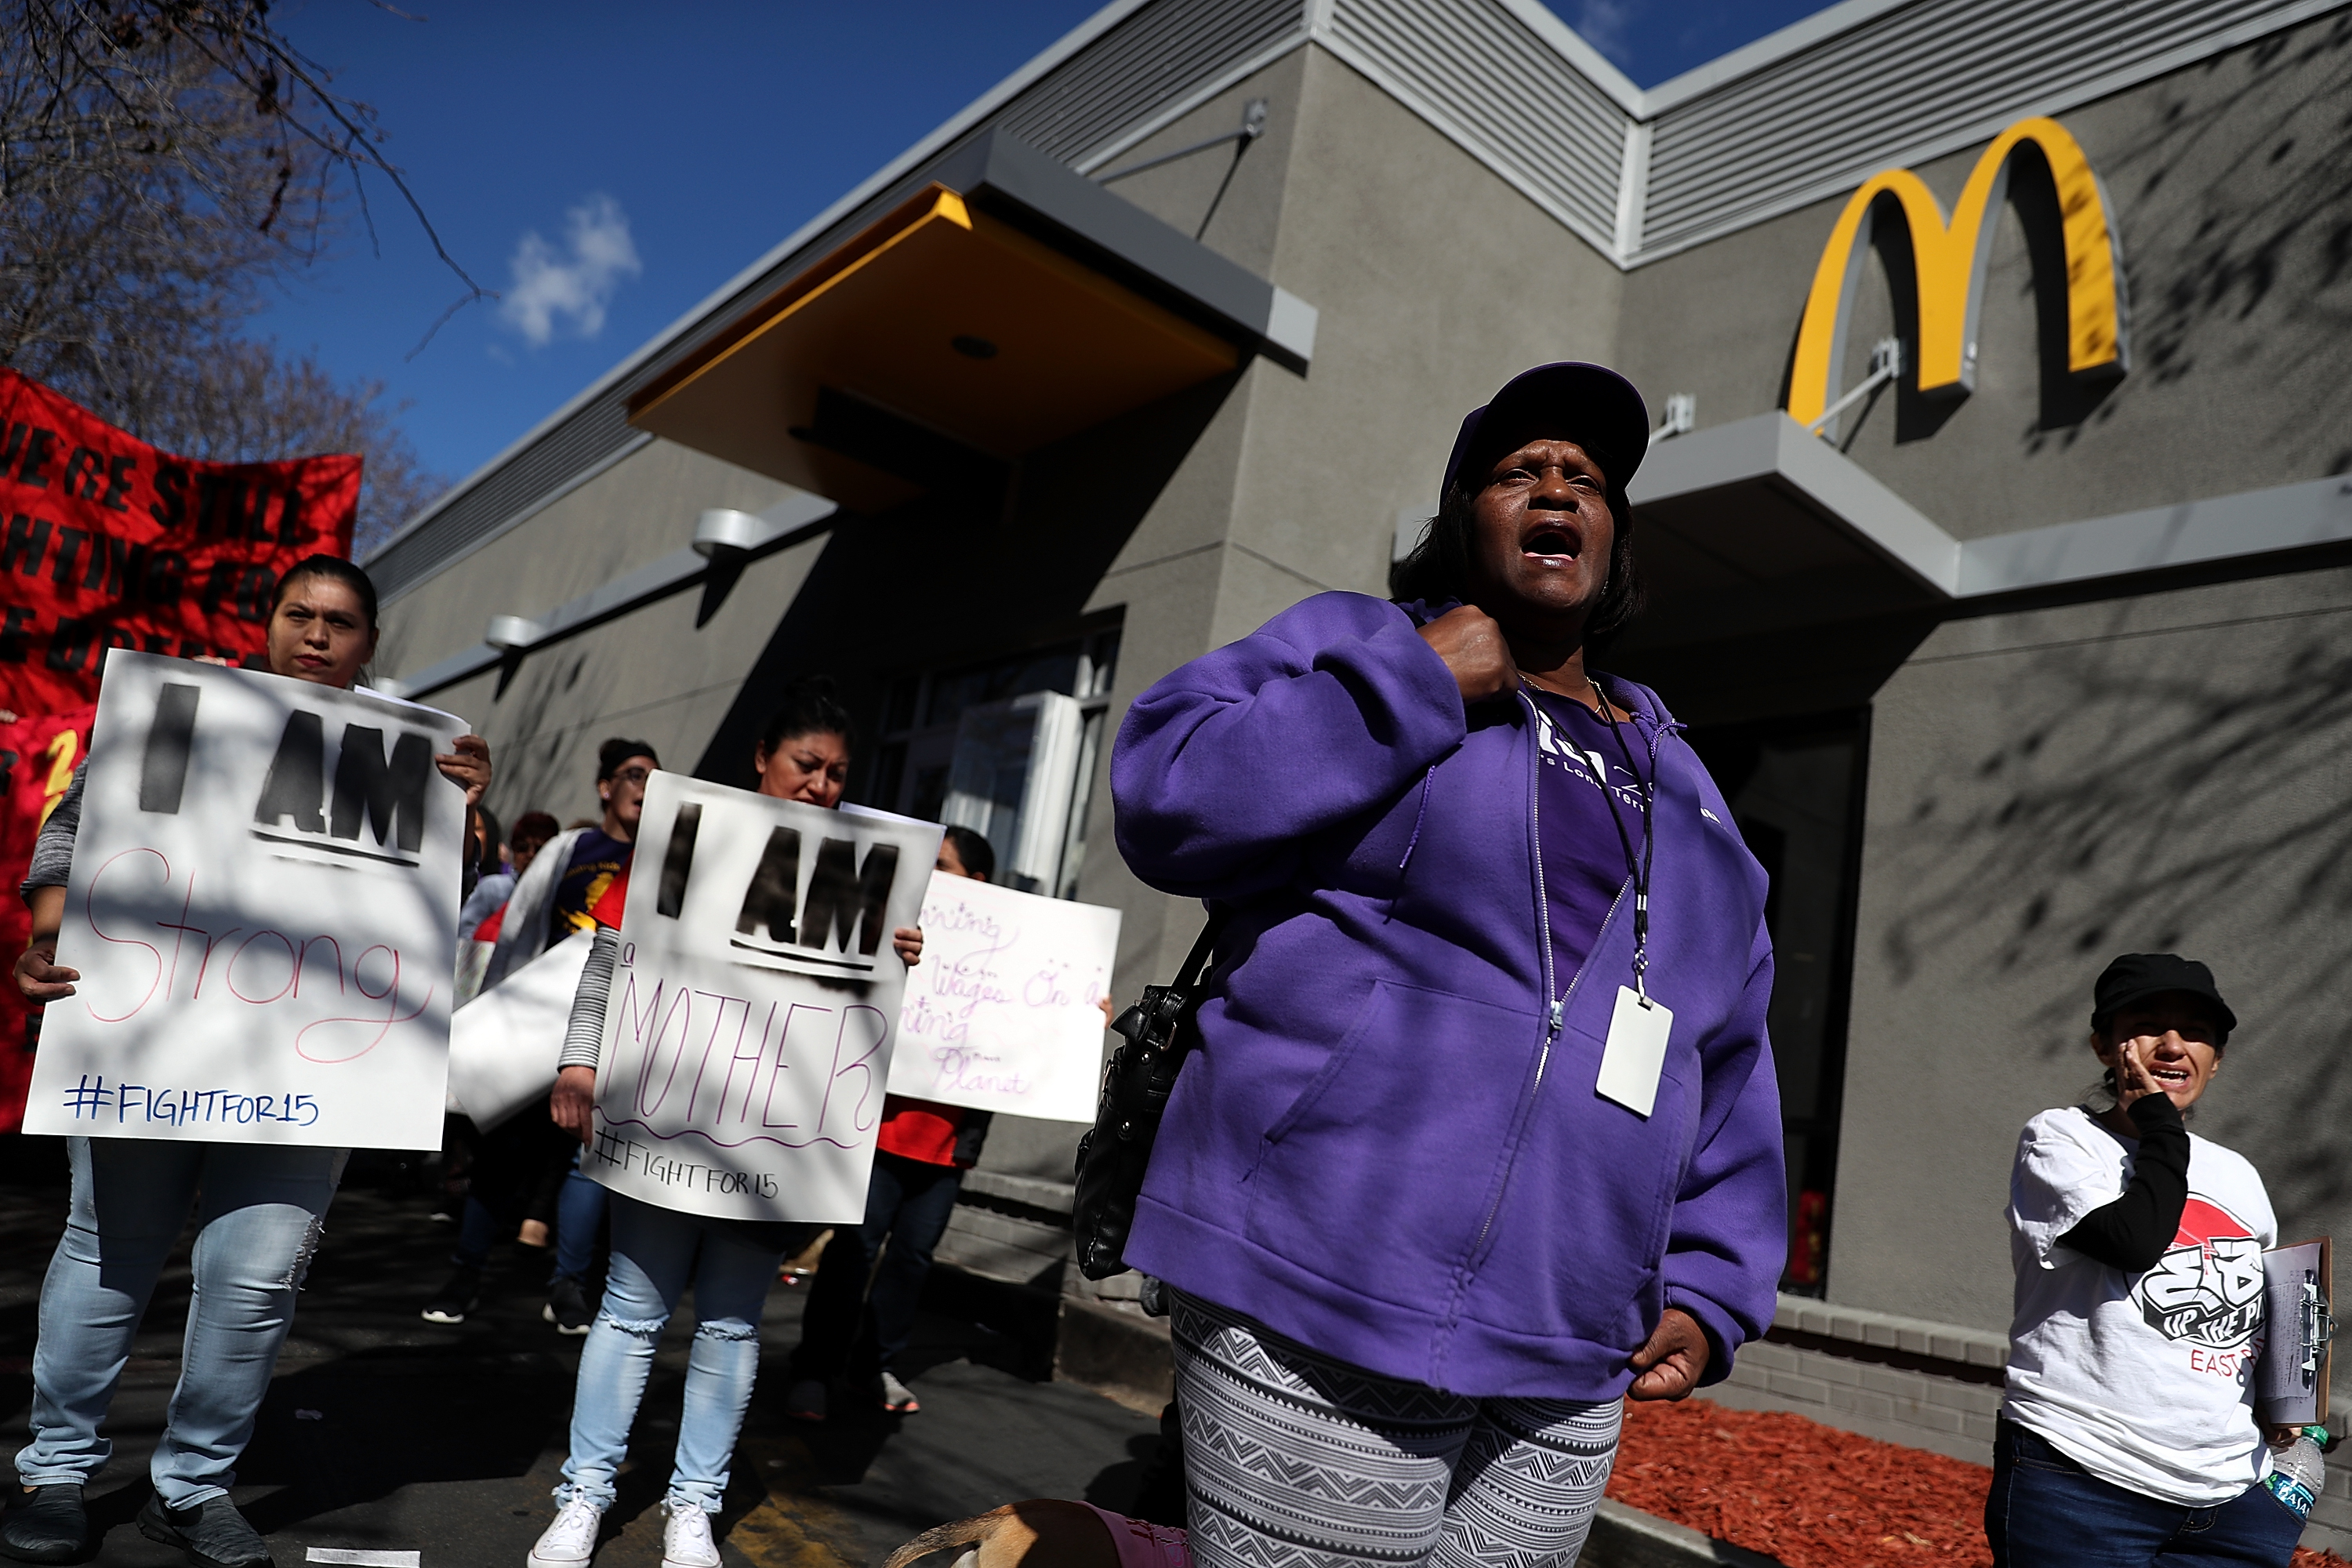 Activists Demonstrate For Raising The Minimum Wage To 15 Dollars